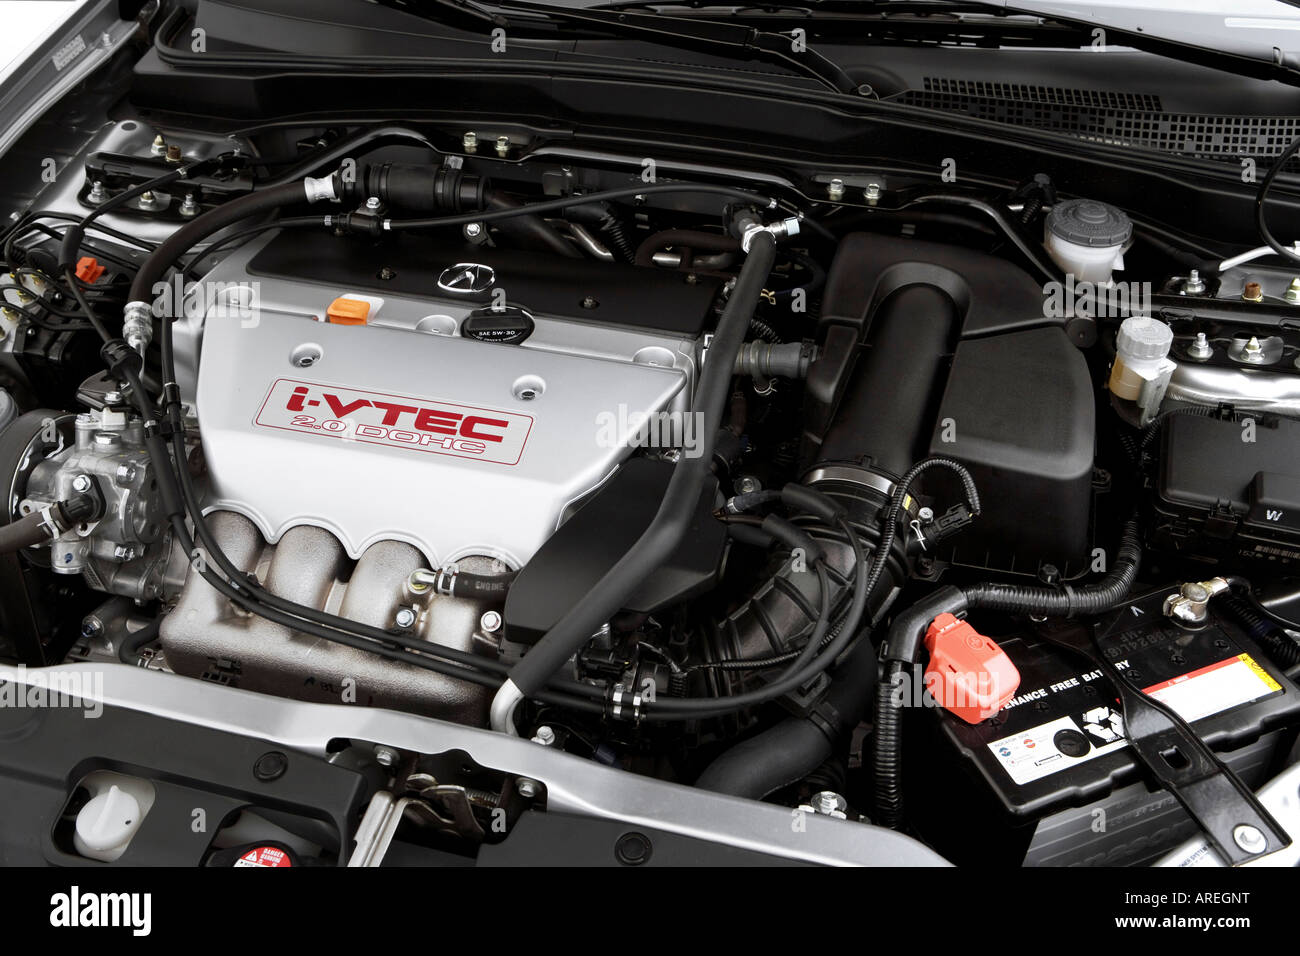 Acura Rsx Type S In Stock Photos Acura Rsx Type S In - Acura rsx type s engine